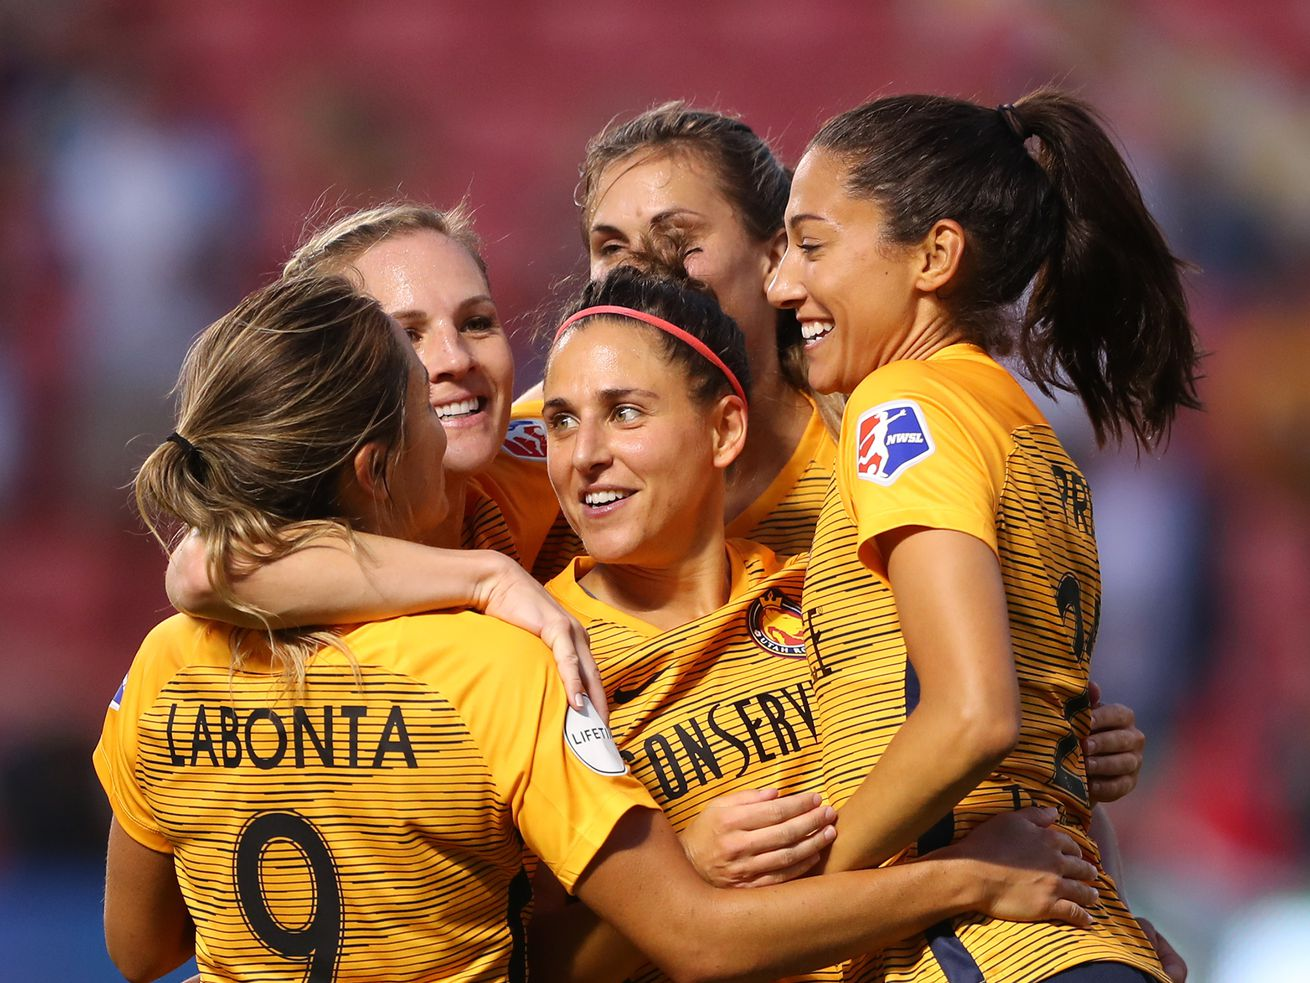 Royals players celebrate after a goal by Utah Royals FC forward Christen Press (23) as the Salt Lake Royals and Sky Blue FC play at Rio Tinto Stadium in Sandy on Wednesday, Aug. 7, 2019.